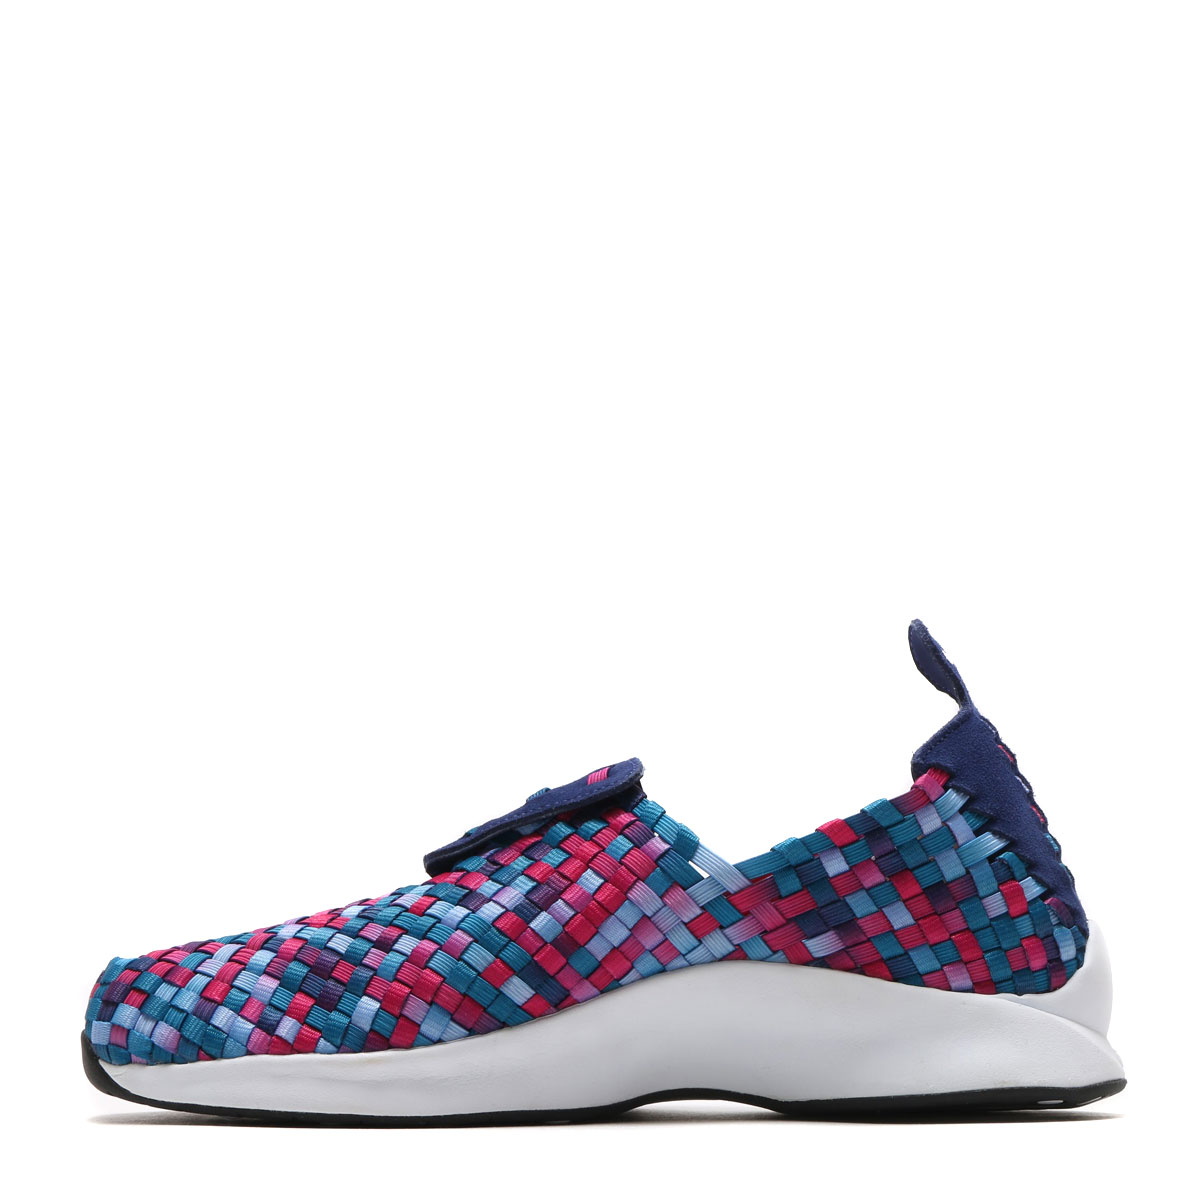 NIKE AIR WOVEN PRM (나이키에아워분프레미암) (BINARY BLUE/WHITE-GREEN ABYSS) 17 SU-S